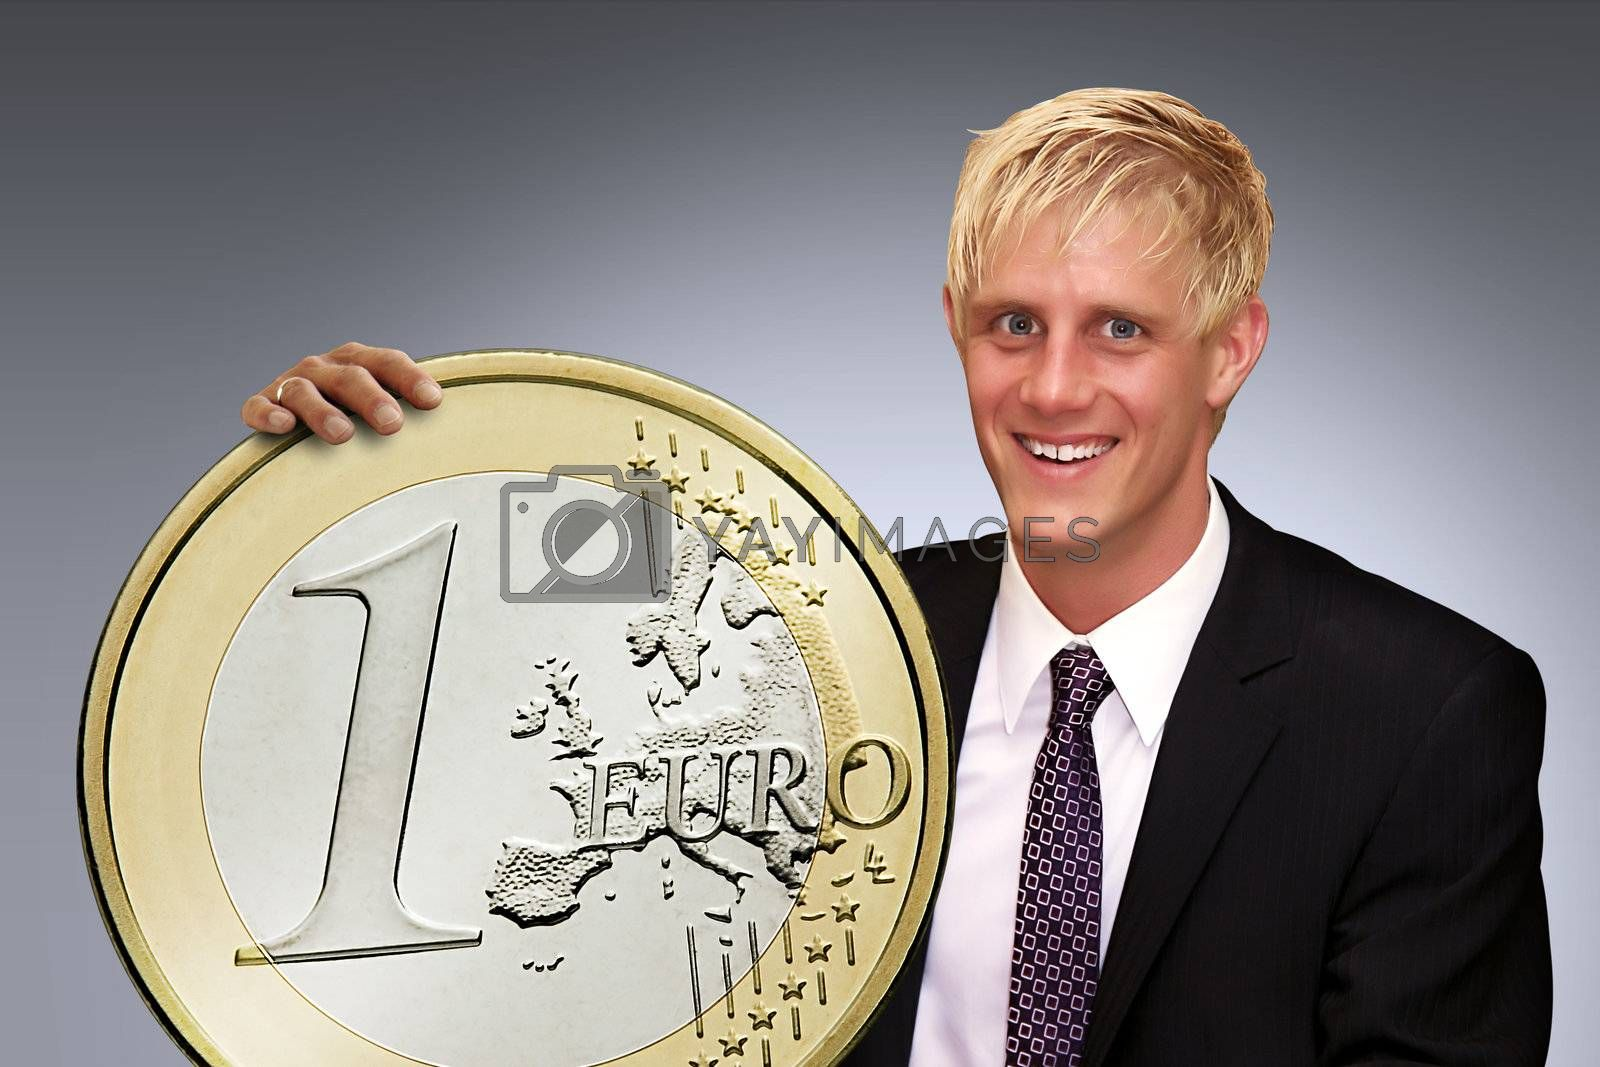 Rich man is holding his euro coin